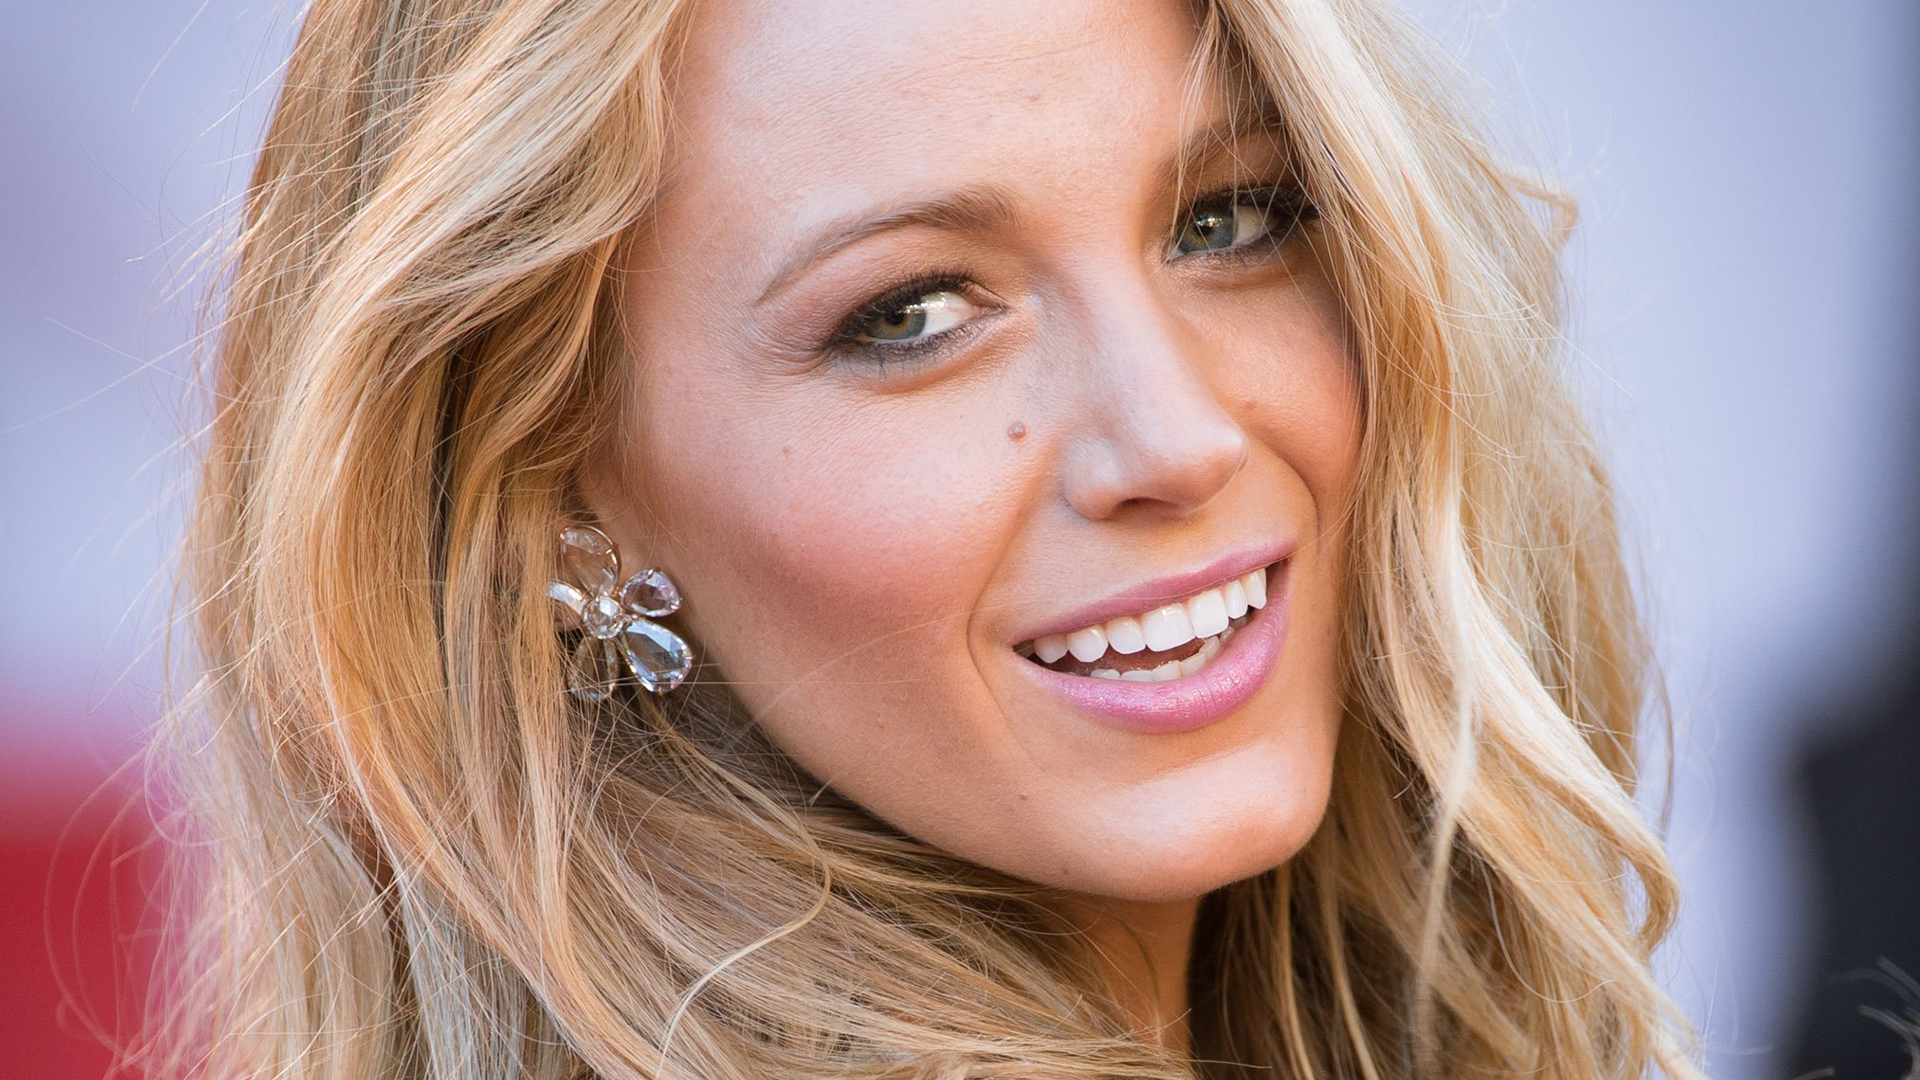 ... ' have more fun! See Blake Lively's trendy new hair color - TODAY.com